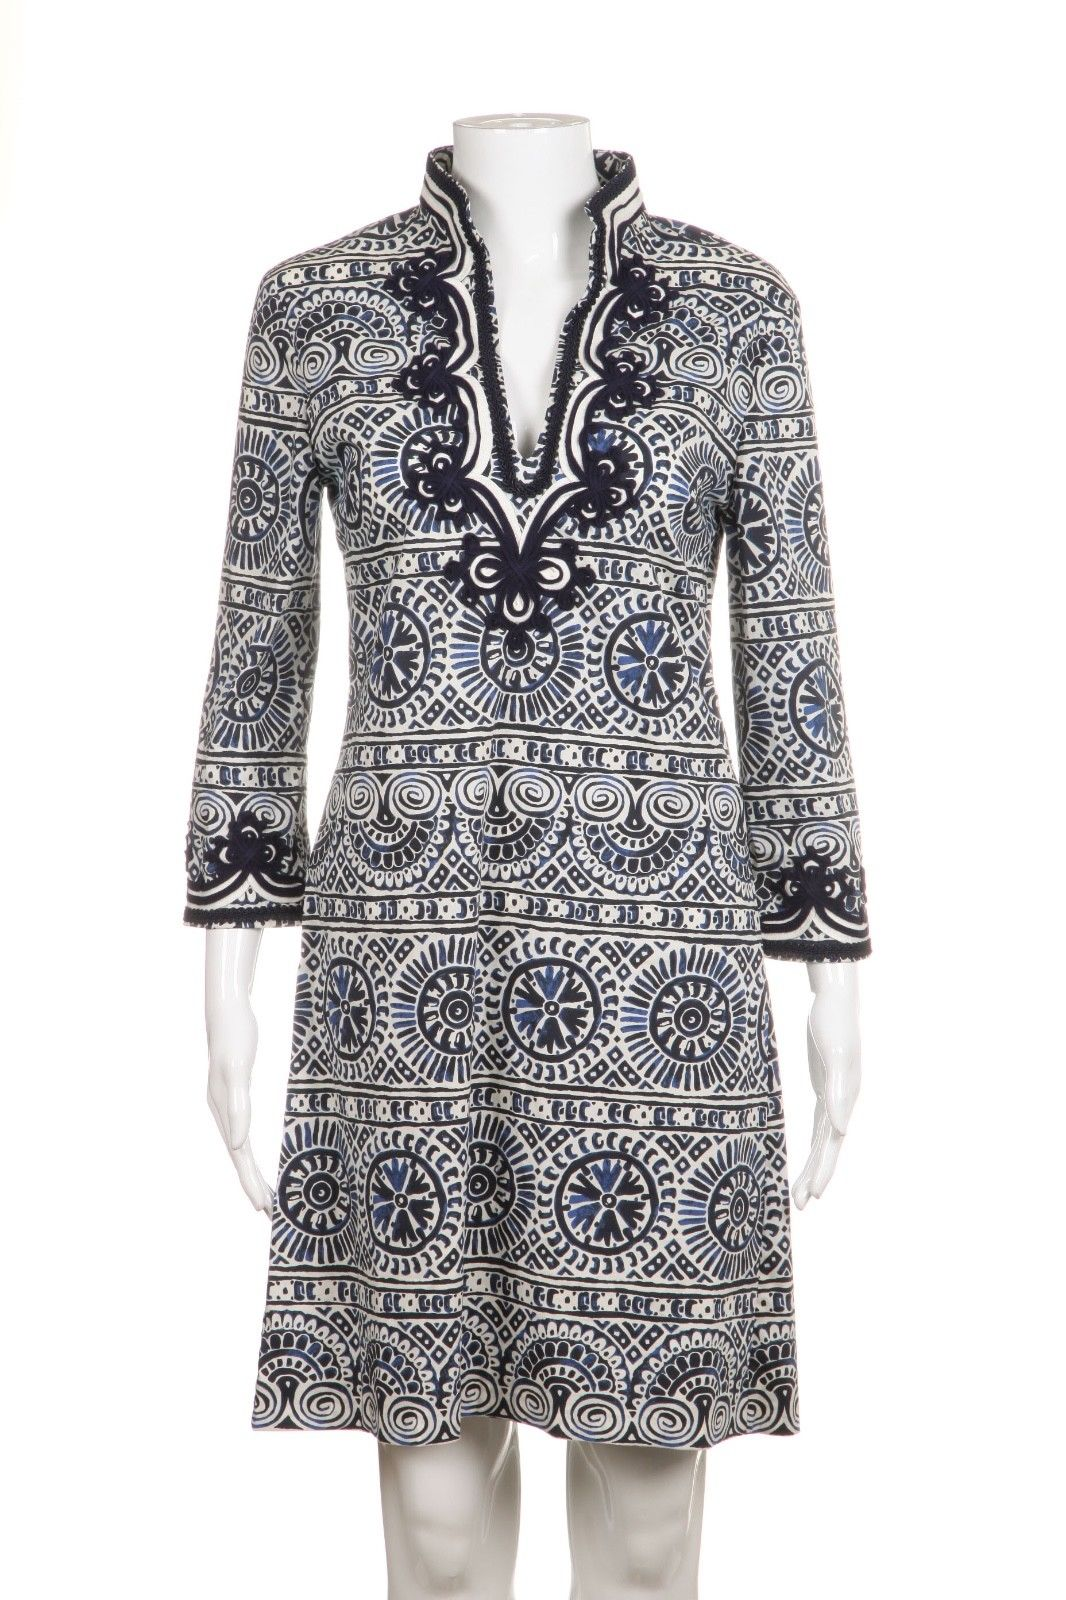 TORY BURCH Blue White Printed Embroidered Tunic Dress Size 2